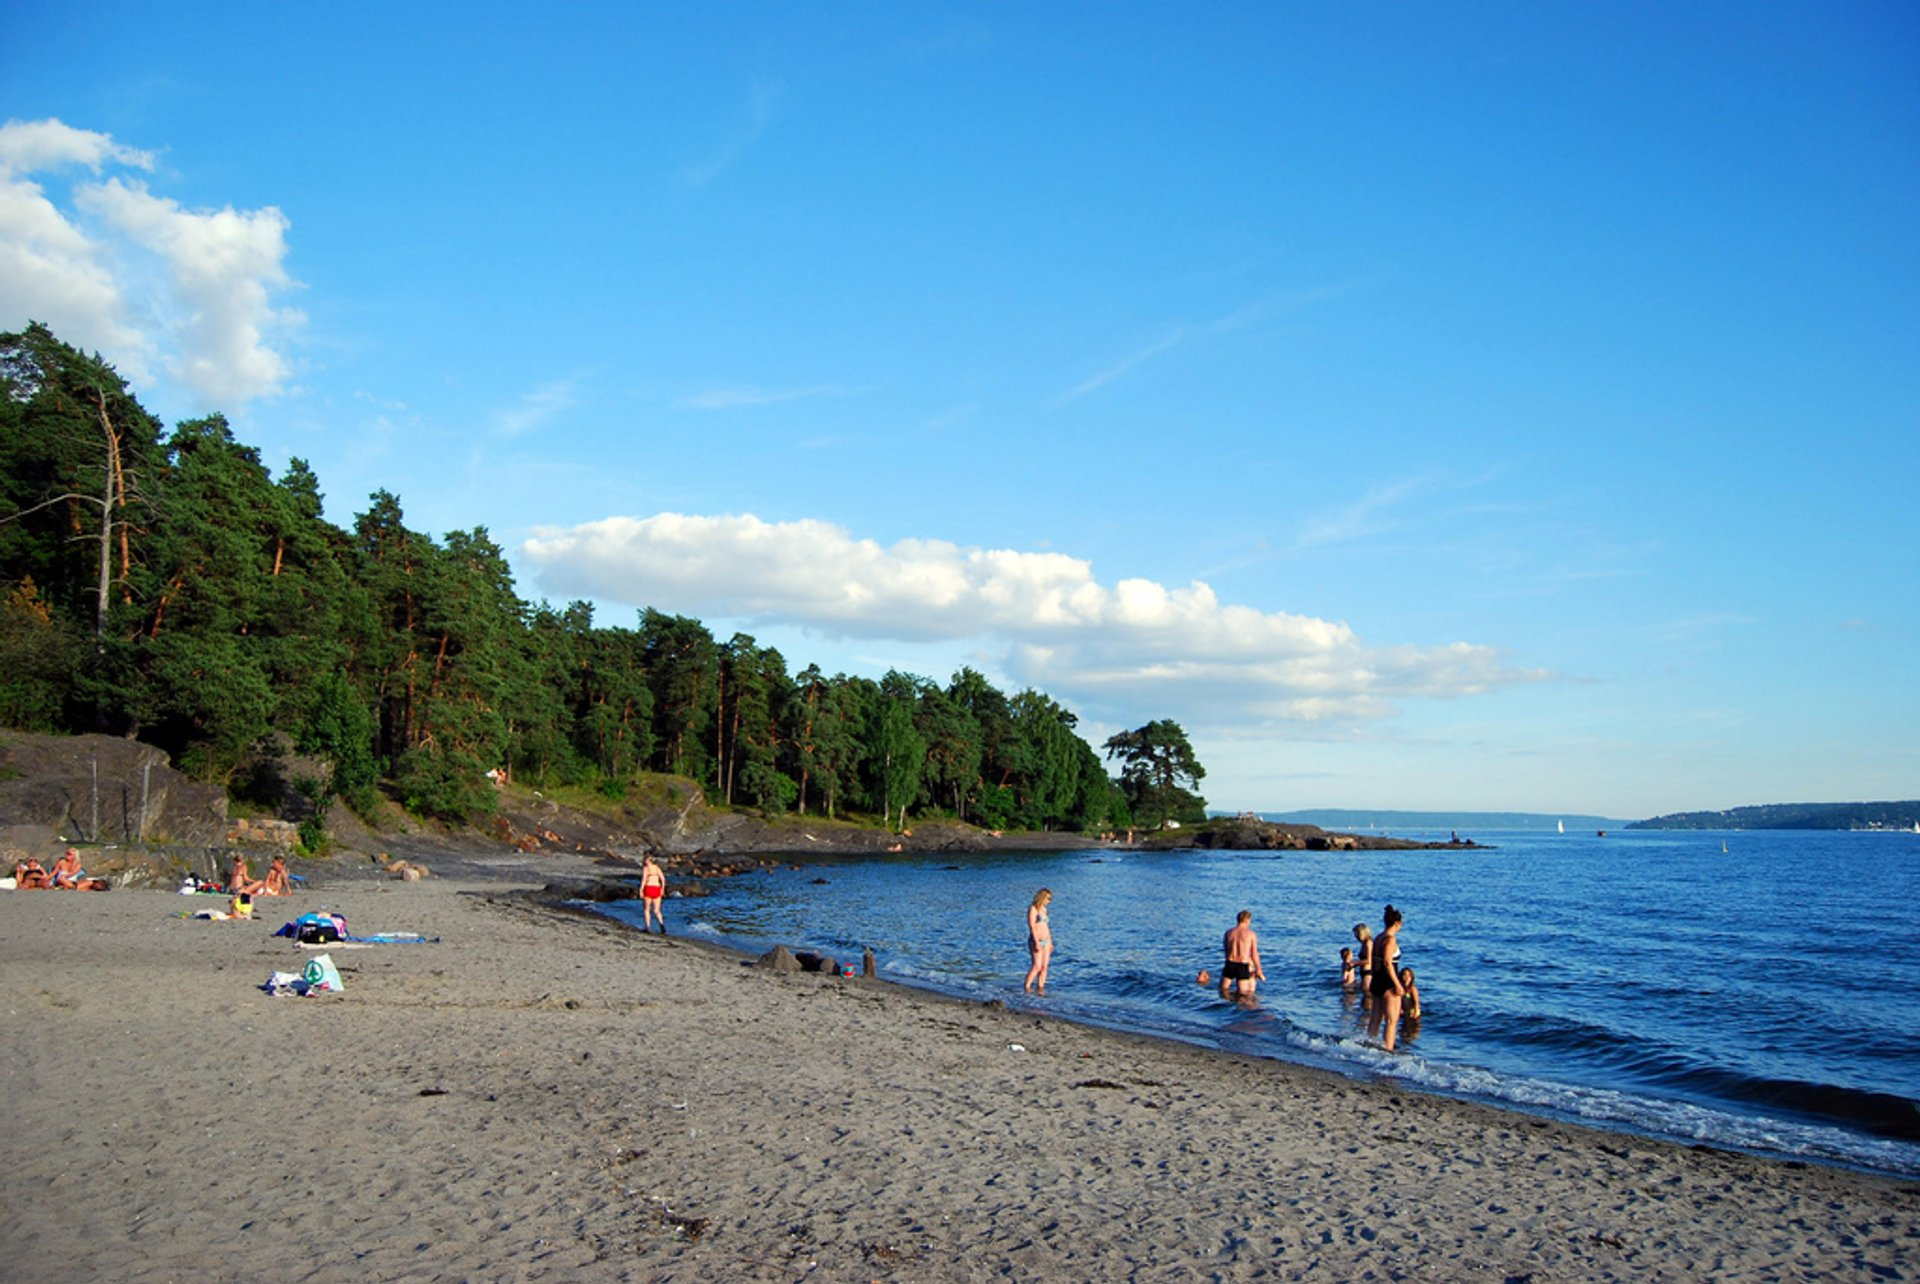 Huk Beach Season in Oslo 2020 - Best Time